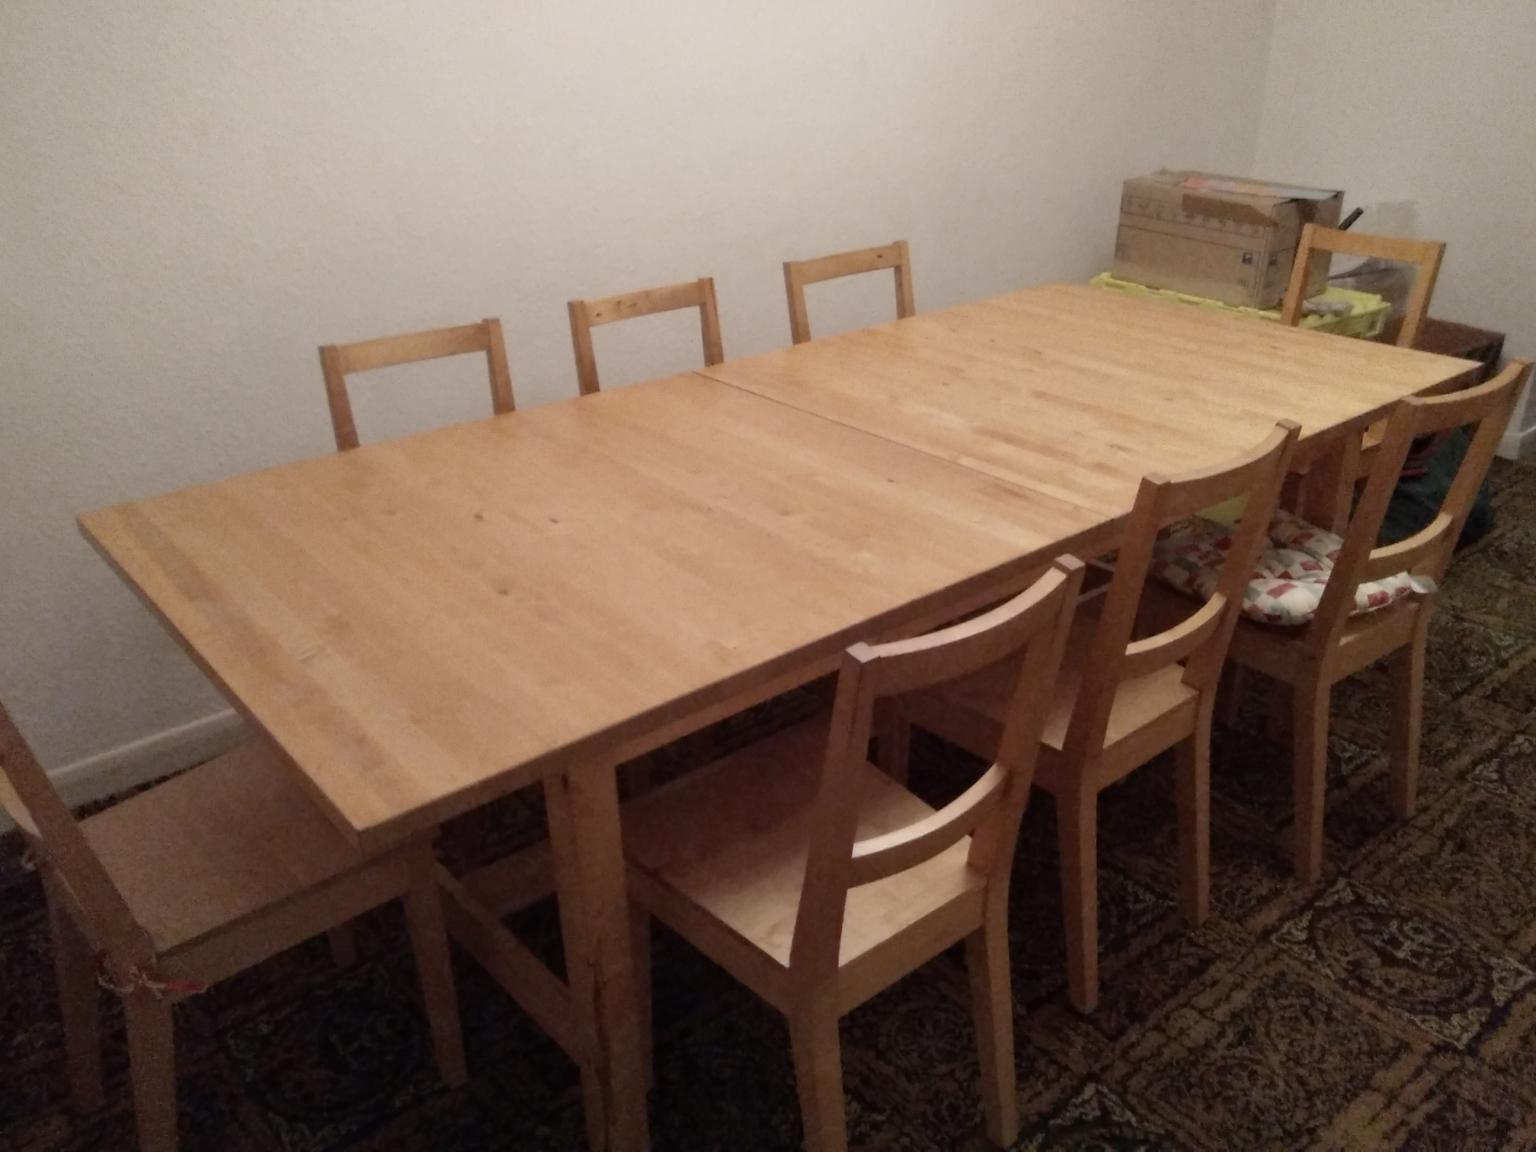 Ikea Birch 8 Seater Dining Table 8 Chairs In Doncaster For 225 00 For Sale Shpock